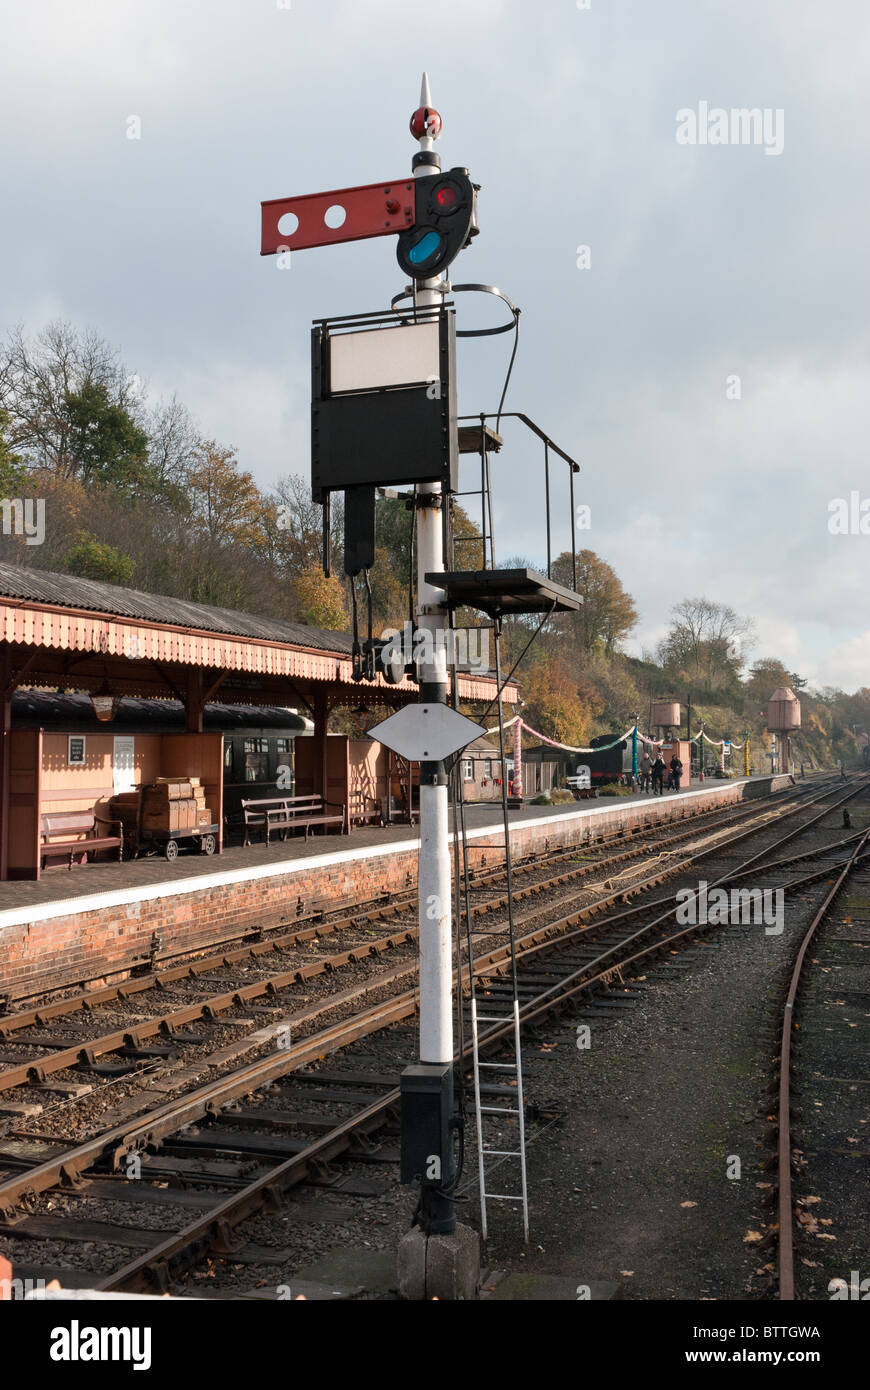 Trackside signal at Bewdley Station on the Severn Valley Railway in Worcestershire Stock Photo